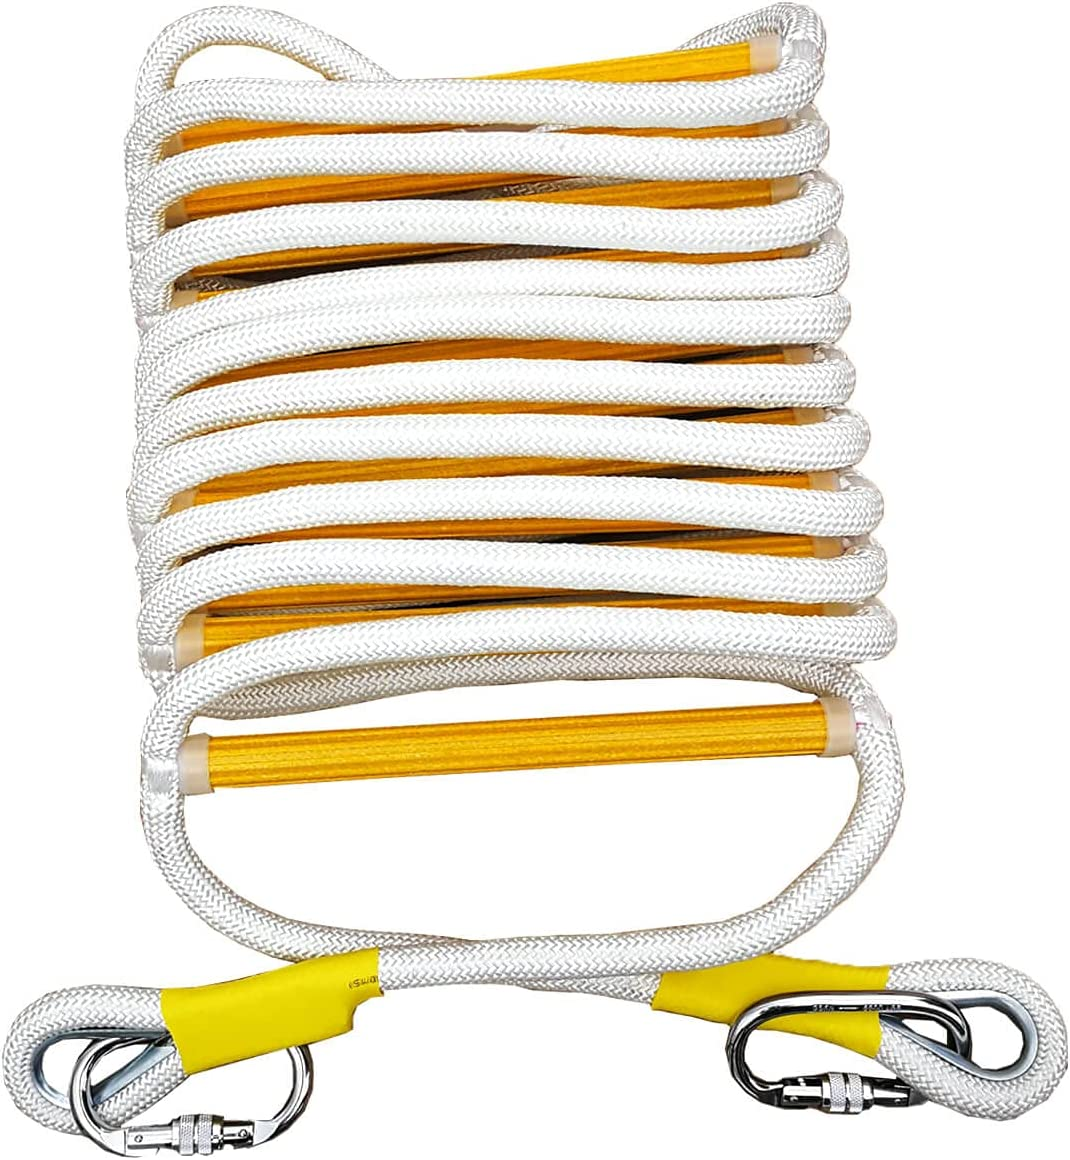 Fire Escape Ladder with Sturdy Carabiners - Rope Ladder, Emergency Escape Ladder with Strong Rungs, 16 Feet, Tested to 2000 Pounds, Reusable